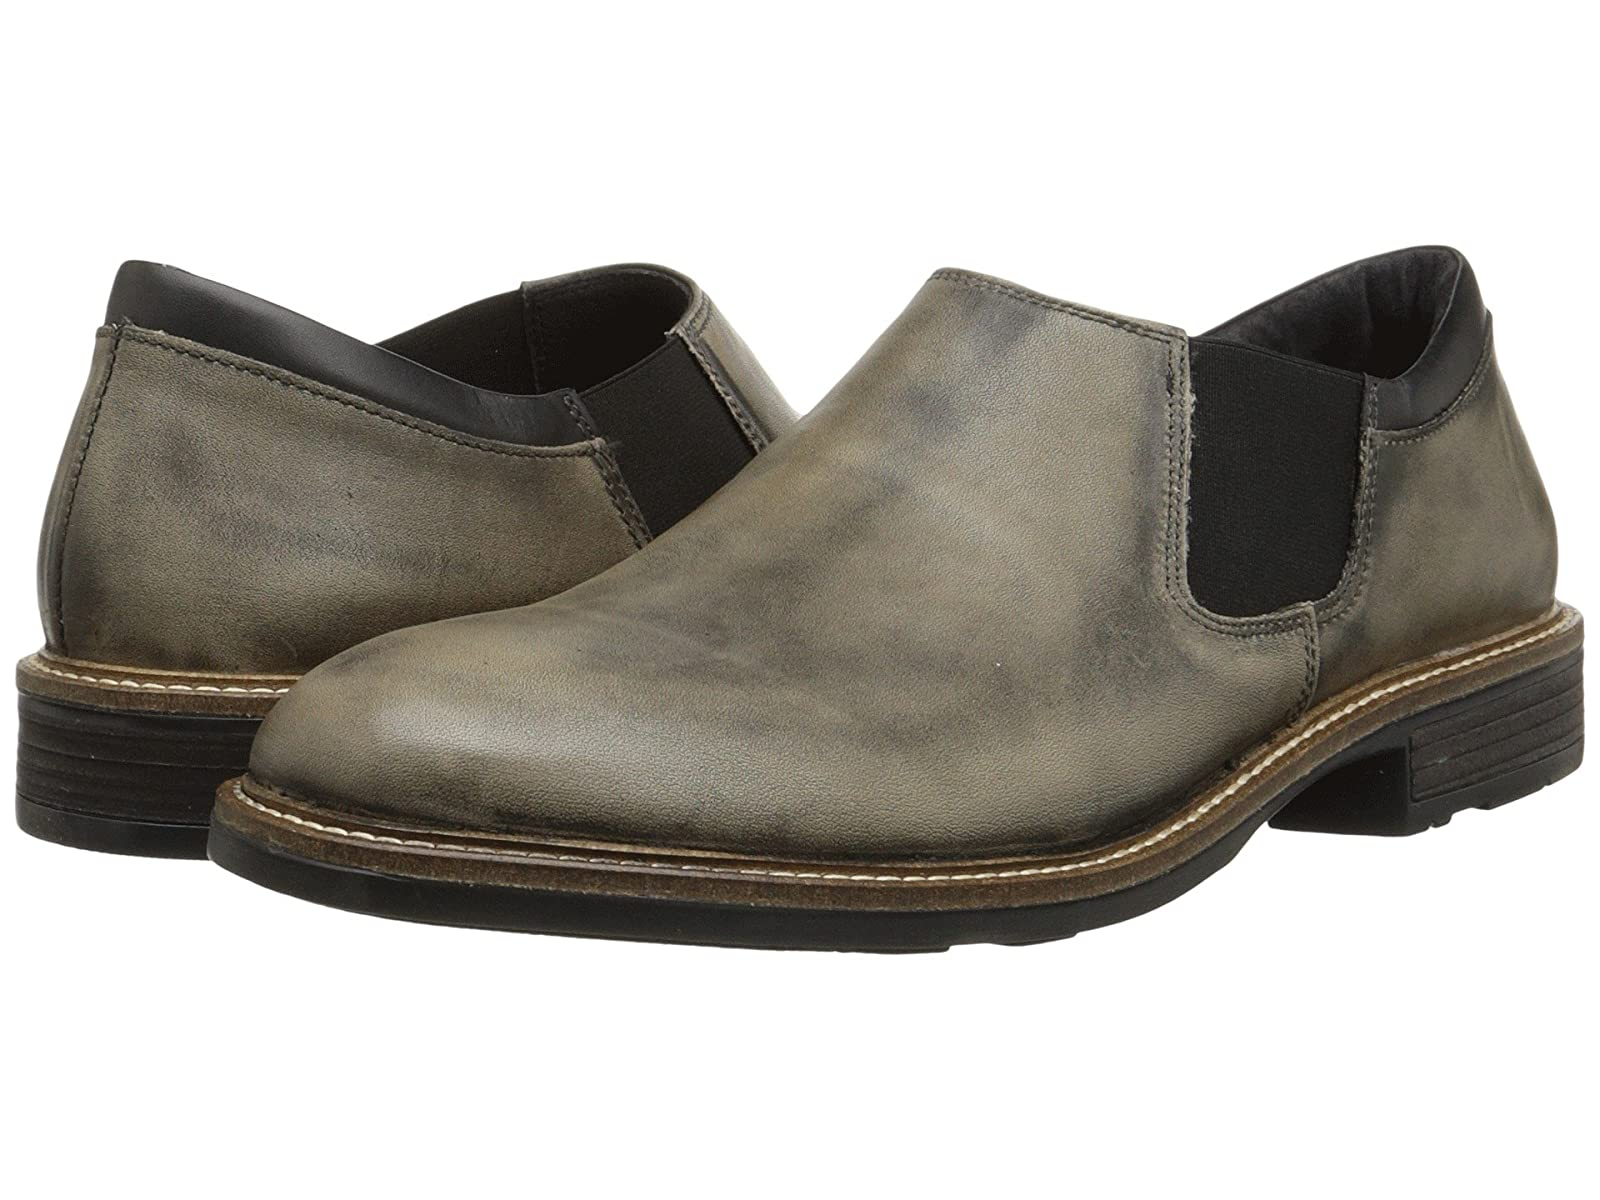 Naot DirectorAtmospheric grades have affordable shoes